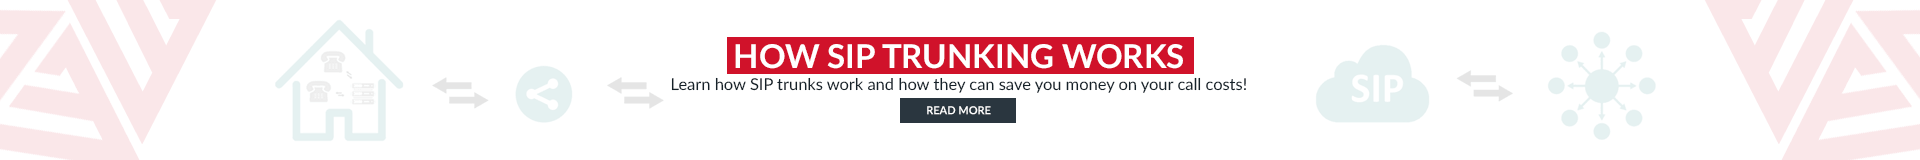 Find out how SIP trunks work and how they can save your business money